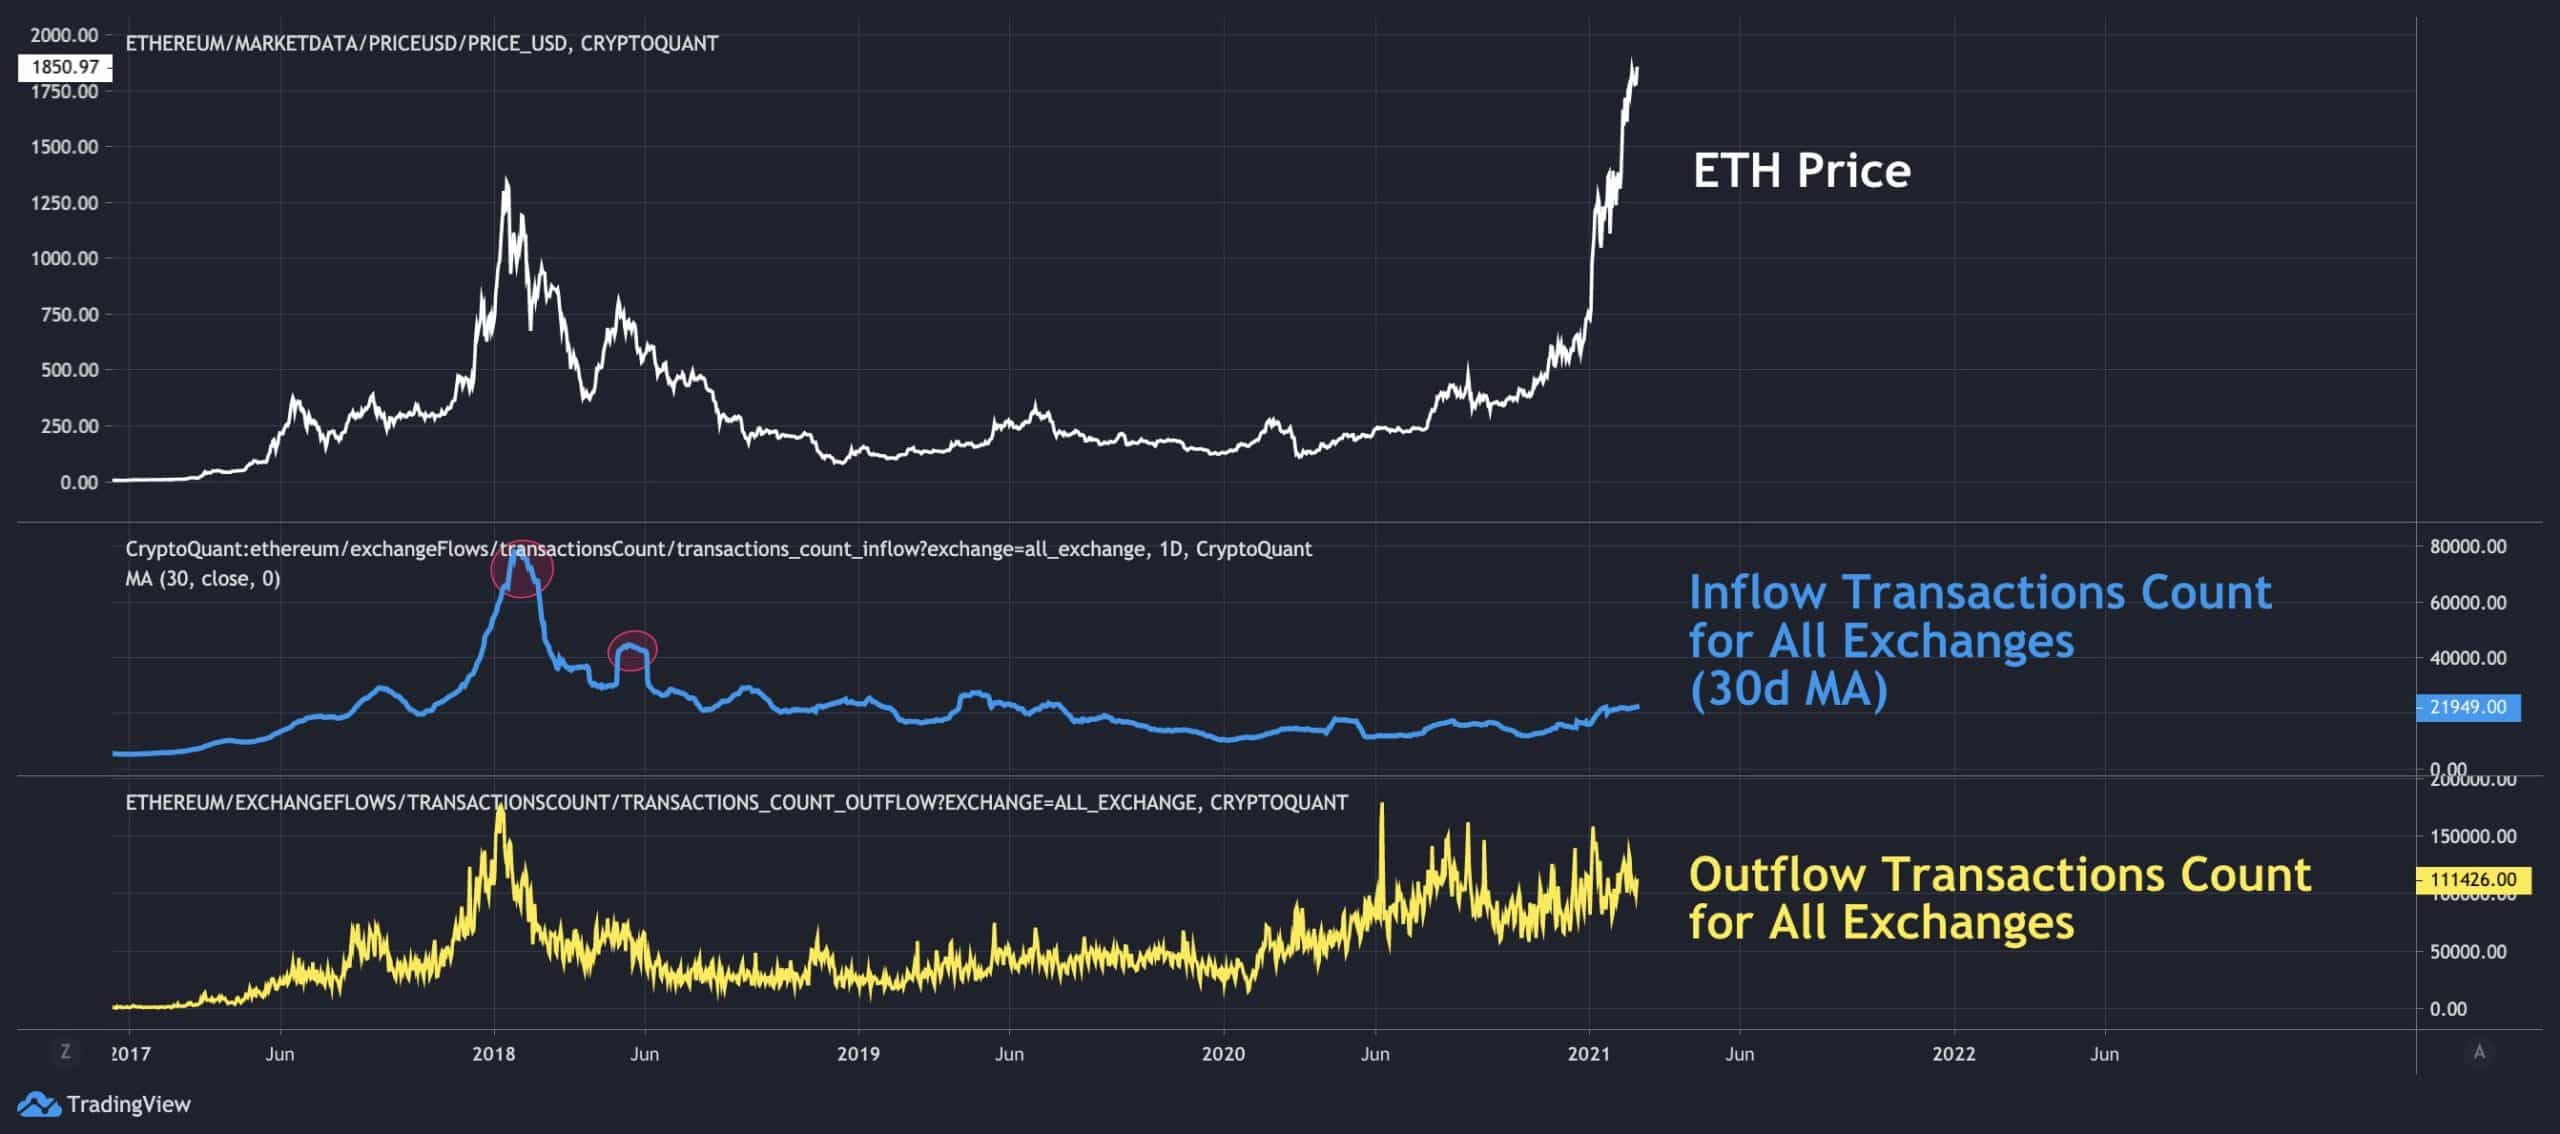 ETH Deposited/Withdrawn From Exchanges. Source: CryptoQuant